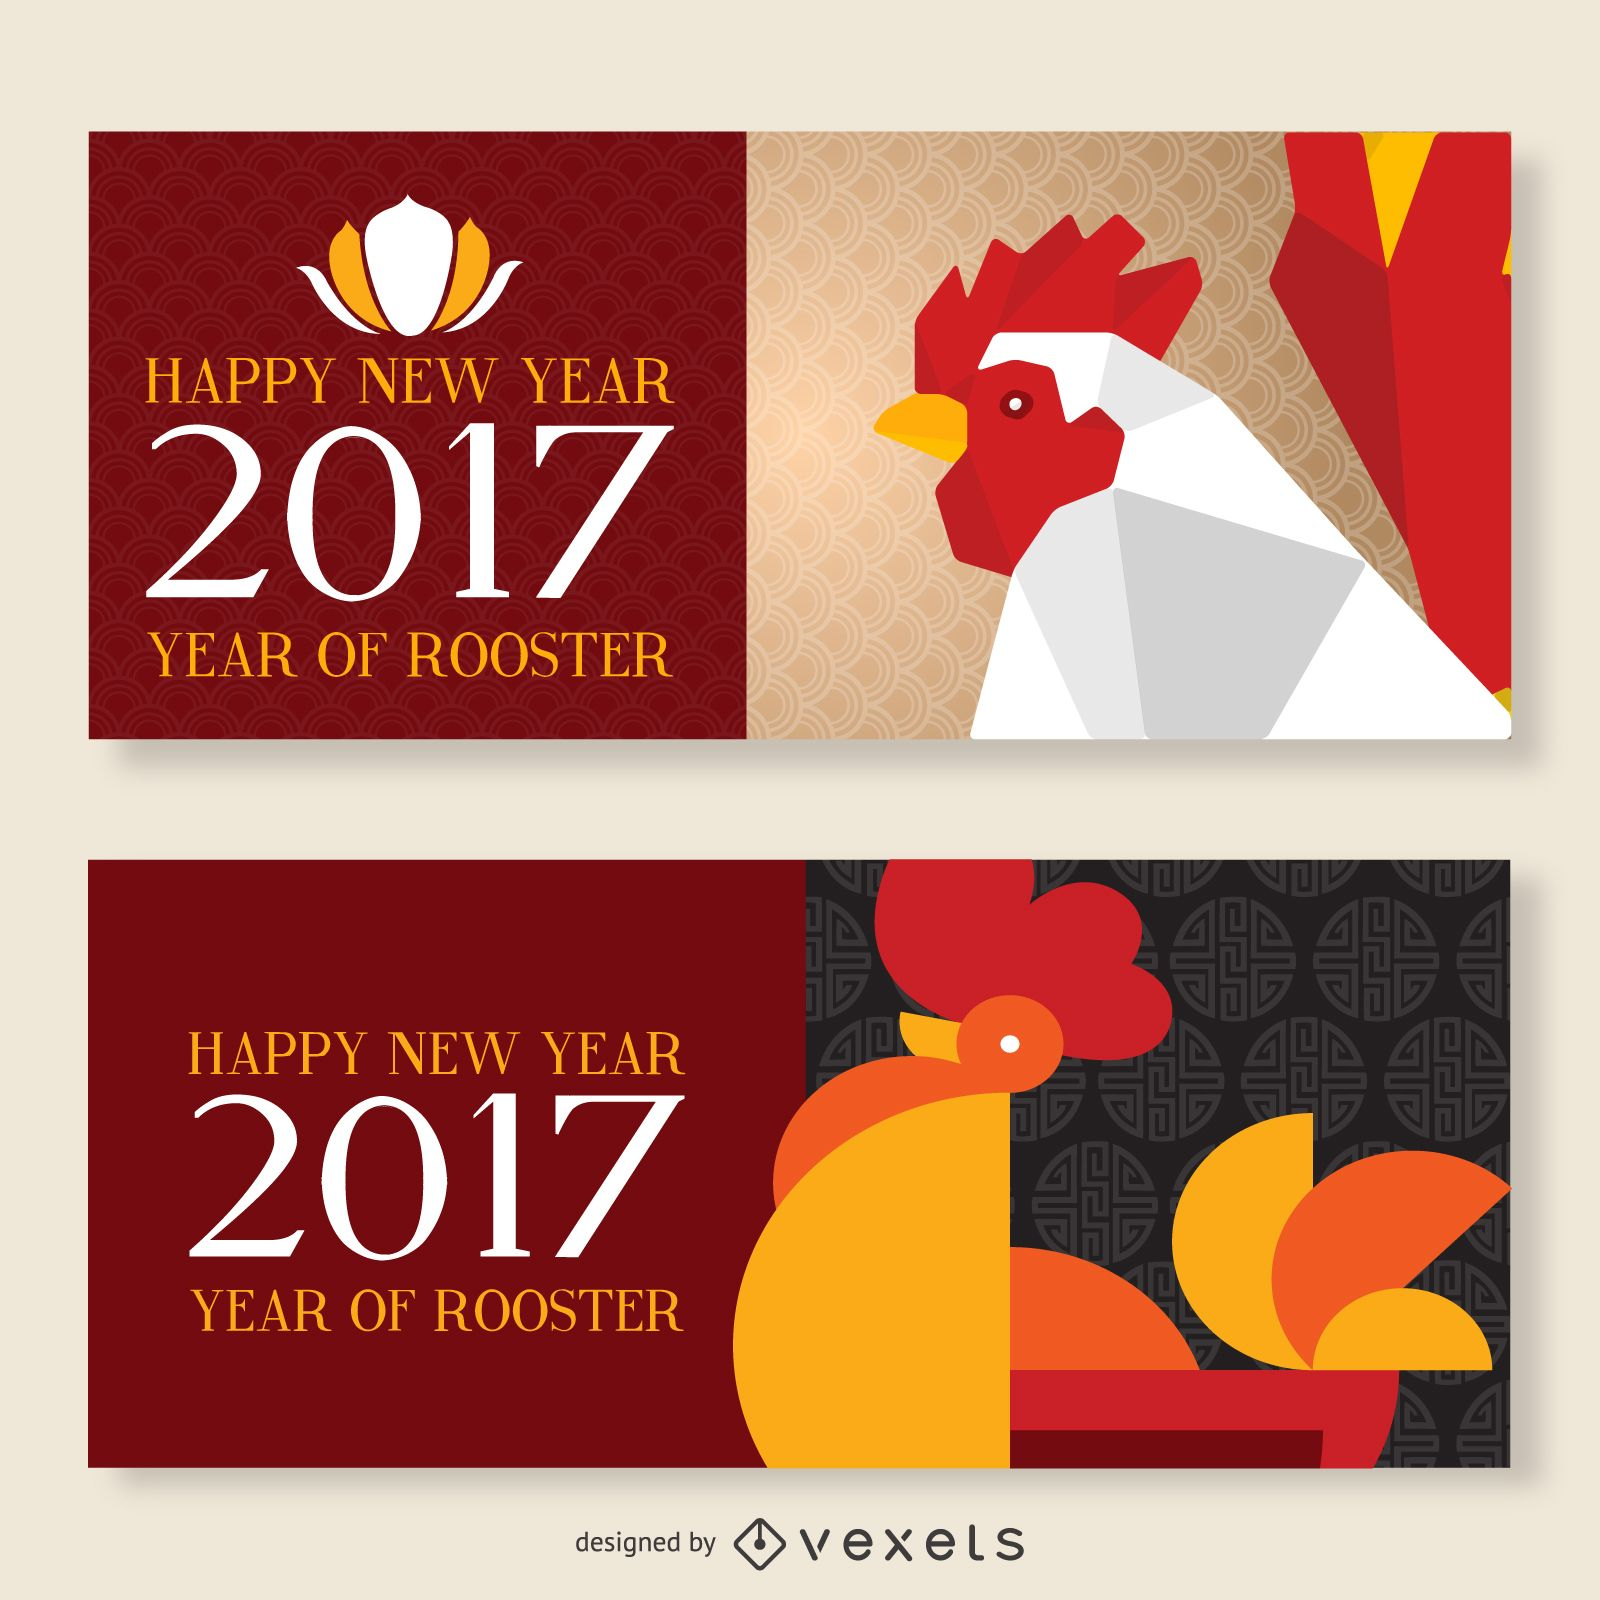 2017 chinese new year banner set download large image 1600x1600px license image user